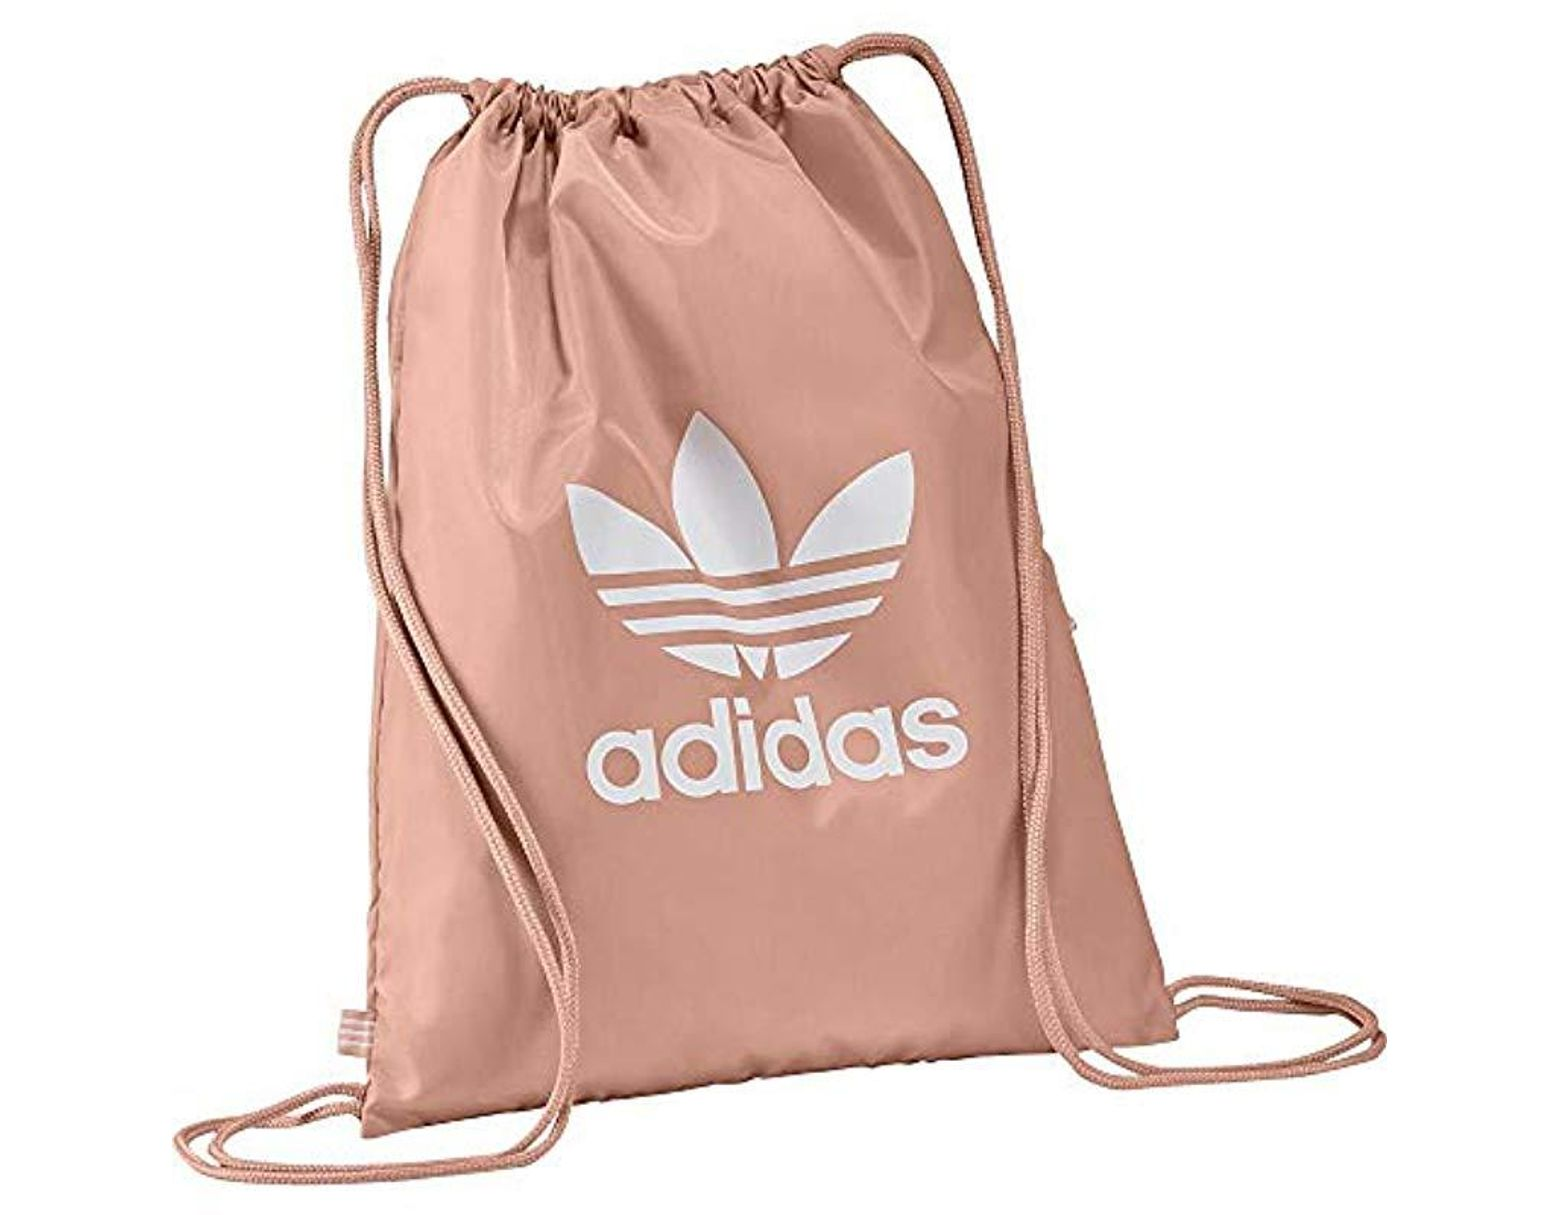 adidas Unisex Gymsack Trefoil Backpack in Pink - Lyst